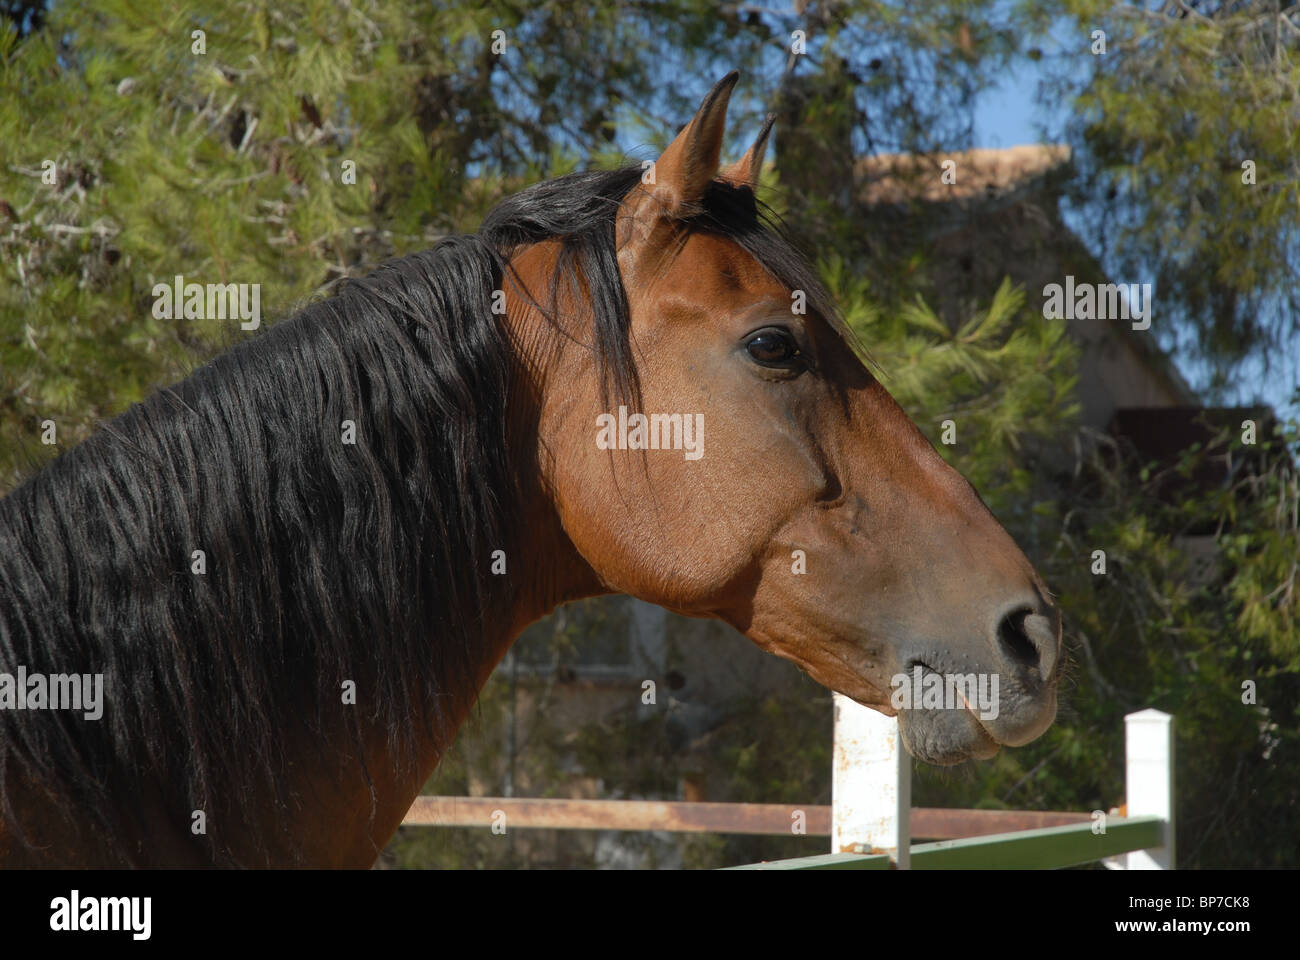 Bay Horse in paddock, La Sella, Denia, Alicante Spain - Stock Image